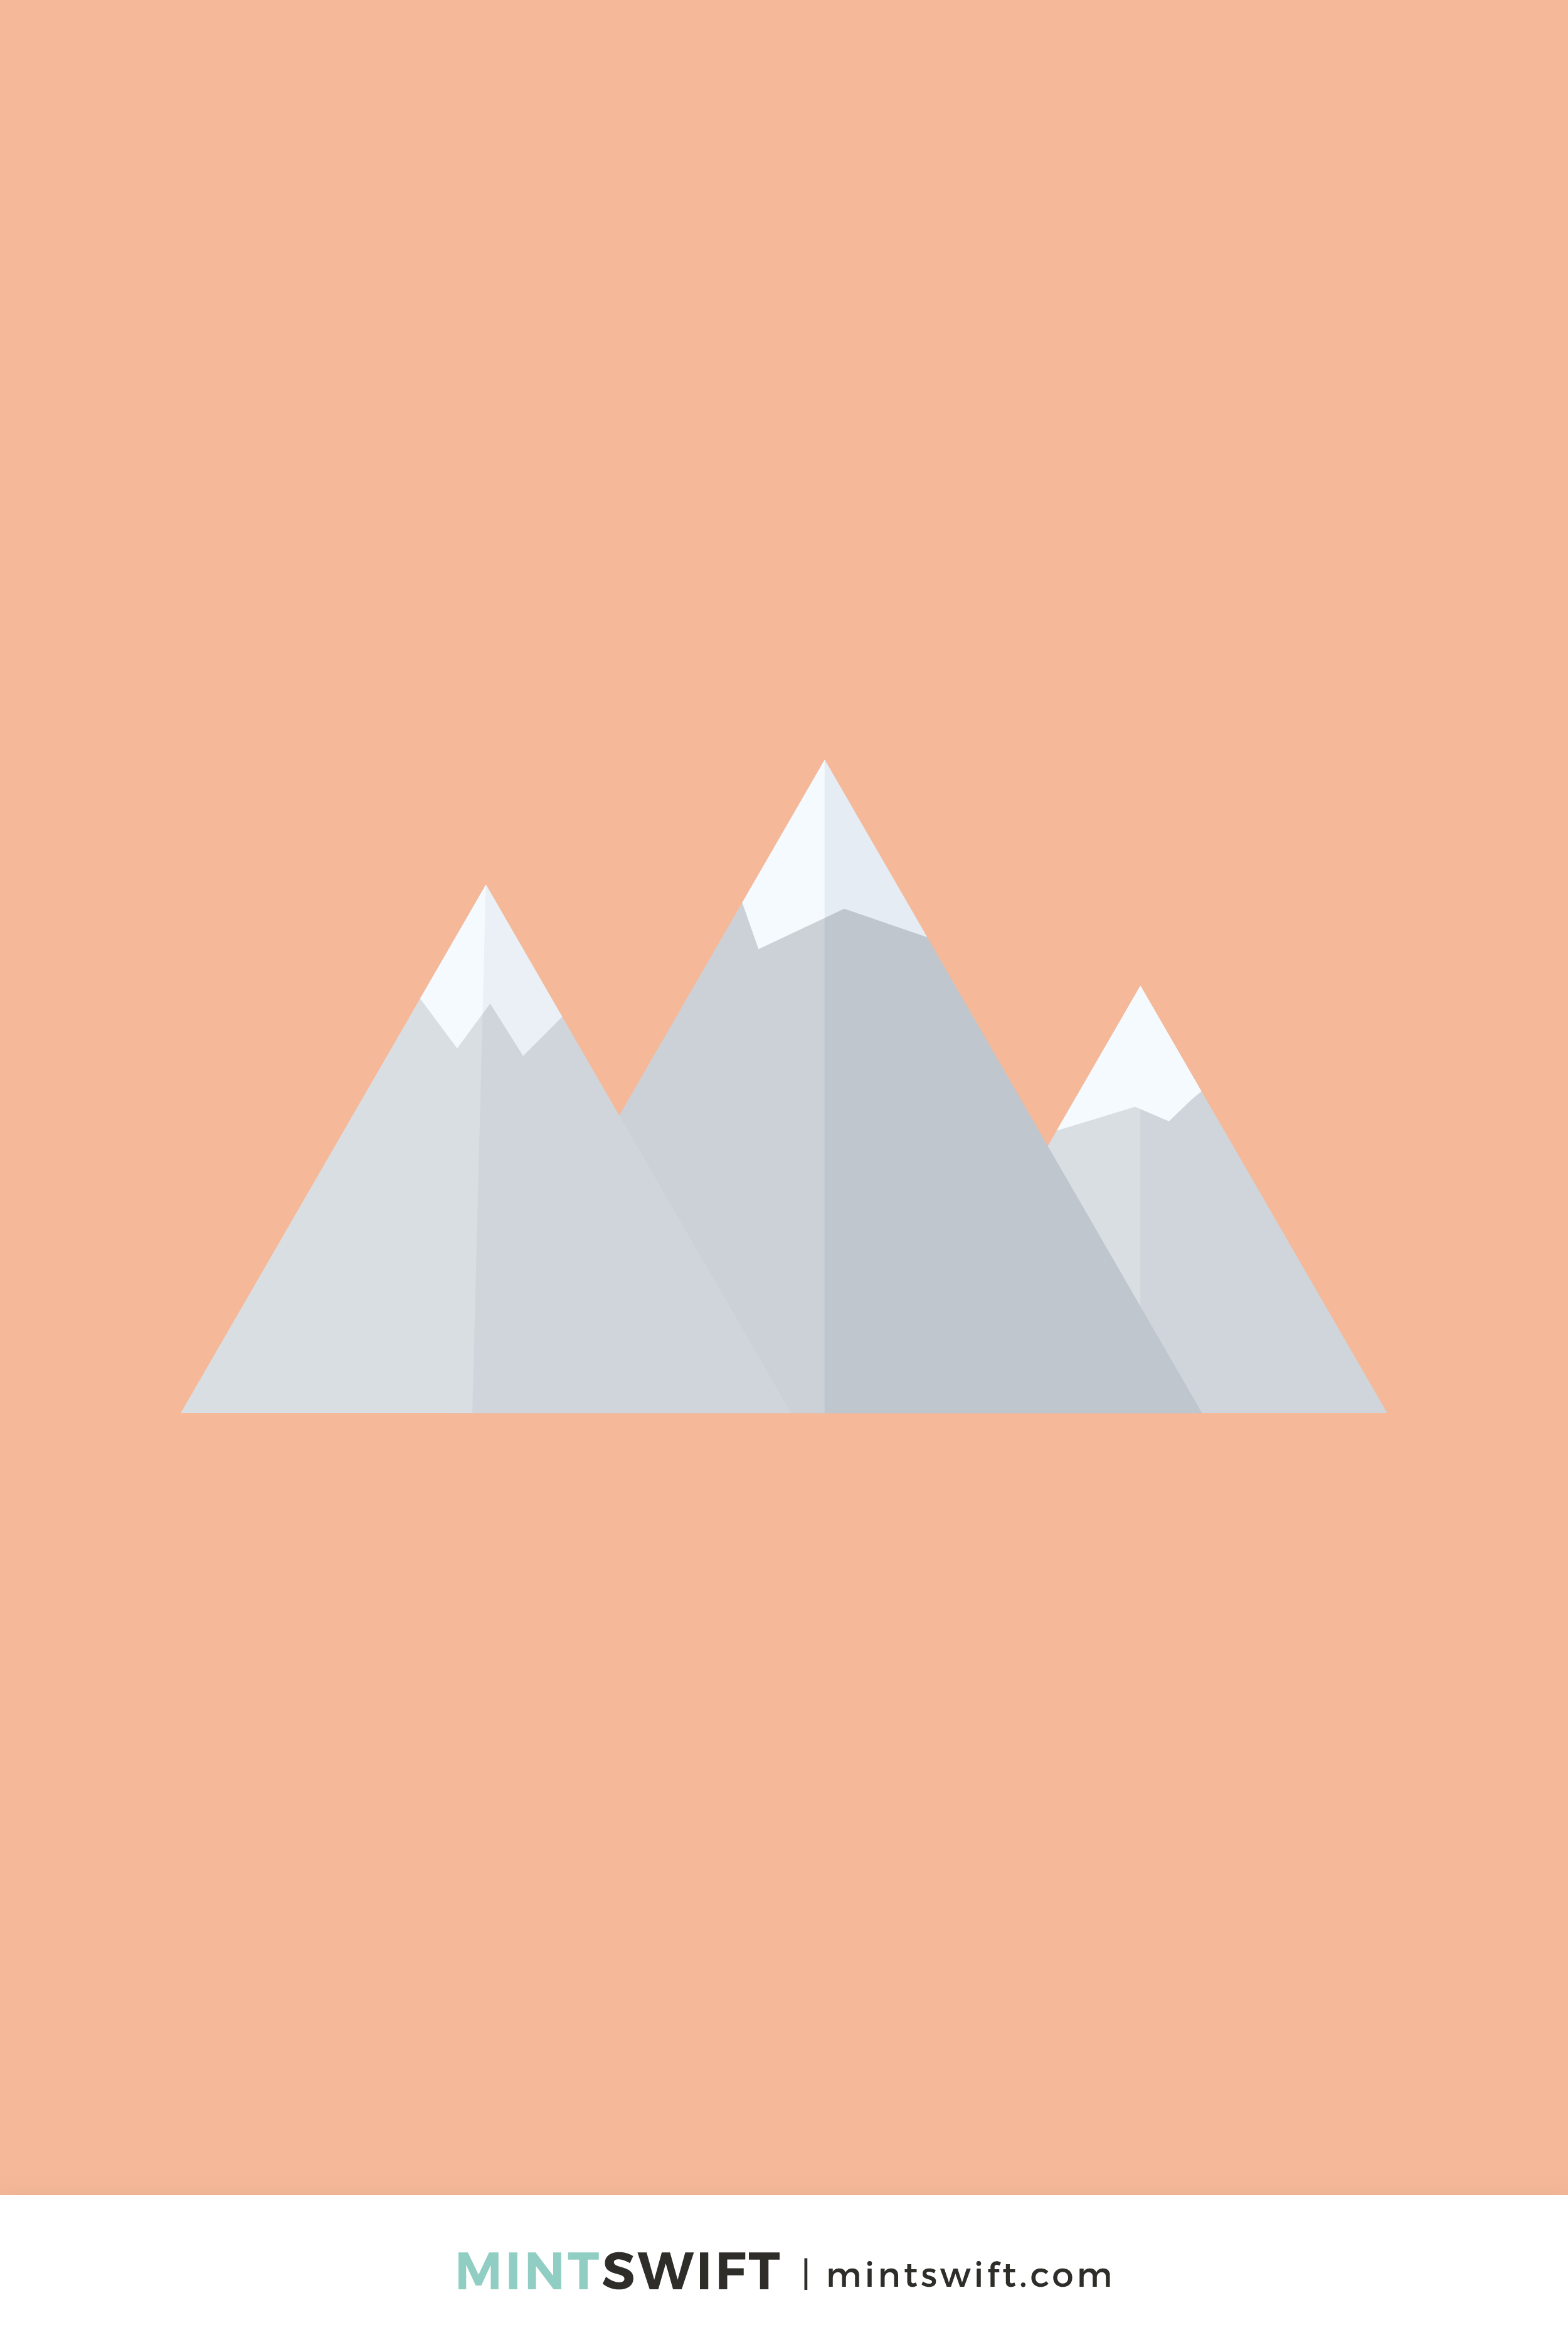 Snow-covered light grey mountain peaks vector illustration in flat design style on an orange background